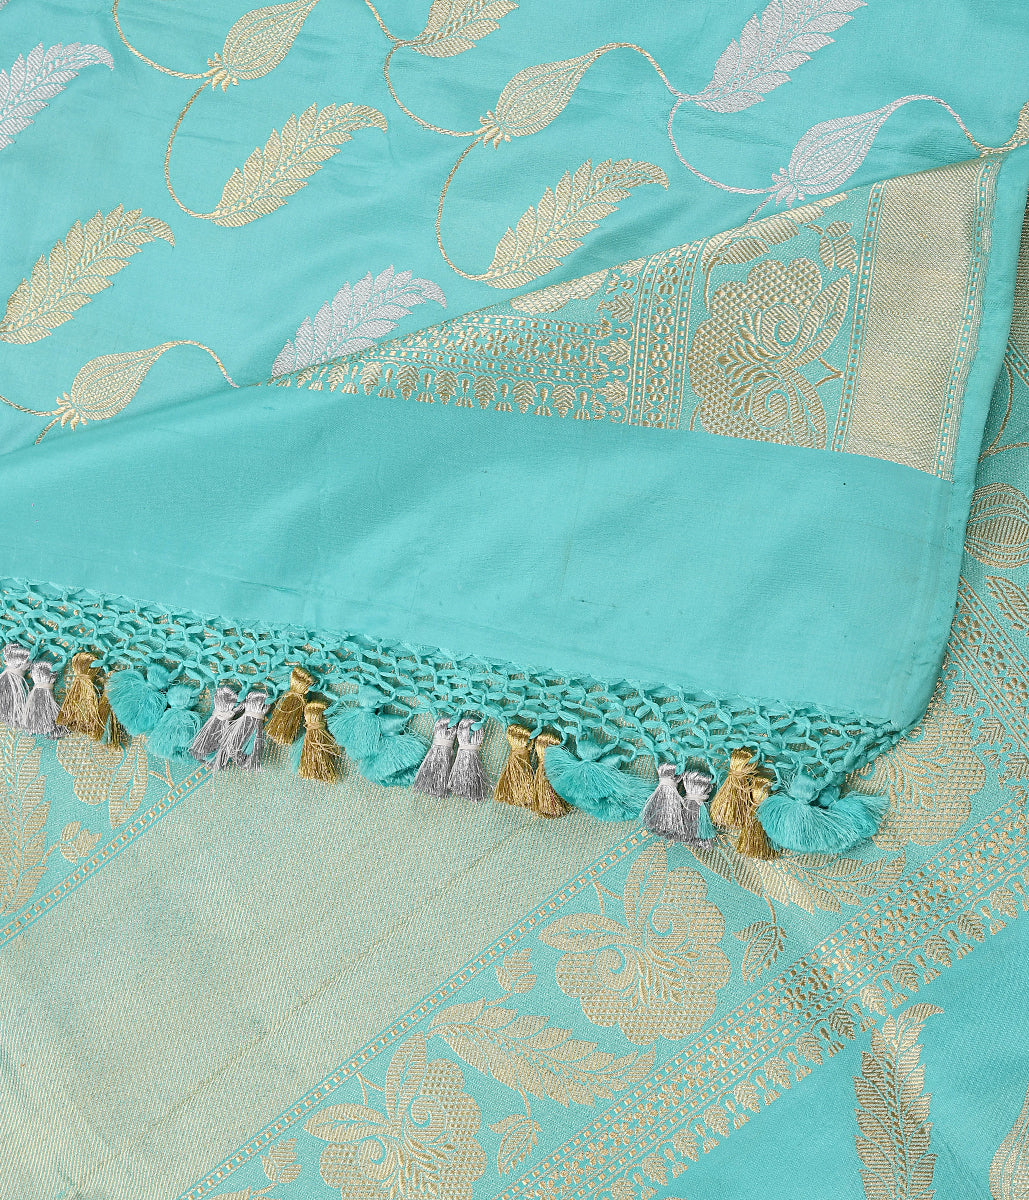 Handwoven Light Blue Banarasi Jangla Dupatta in Kadhwa Weave